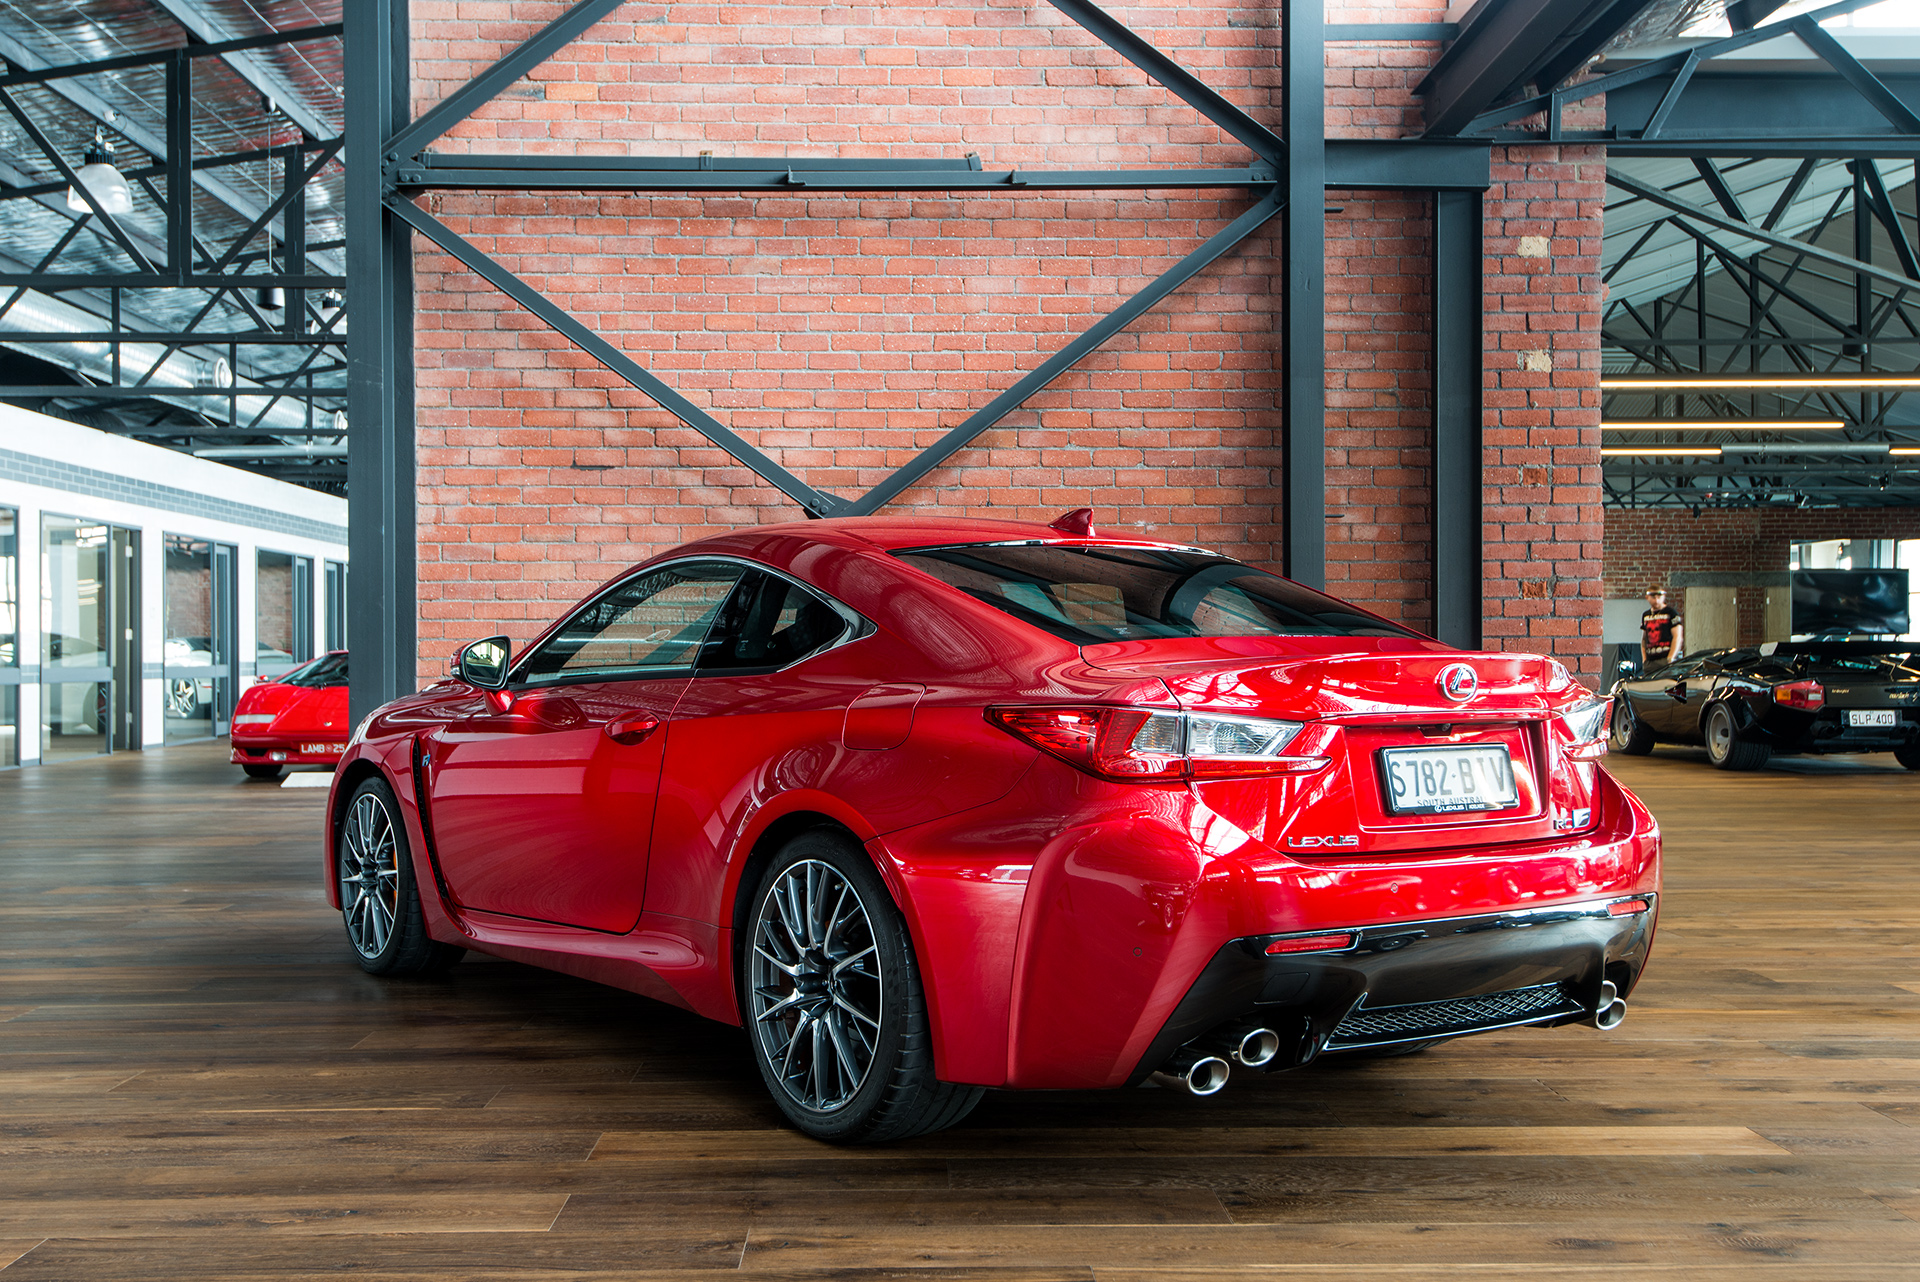 2016 Lexus Rcf Coupe Richmonds Classic And Prestige Cars Storage And Sales Adelaide